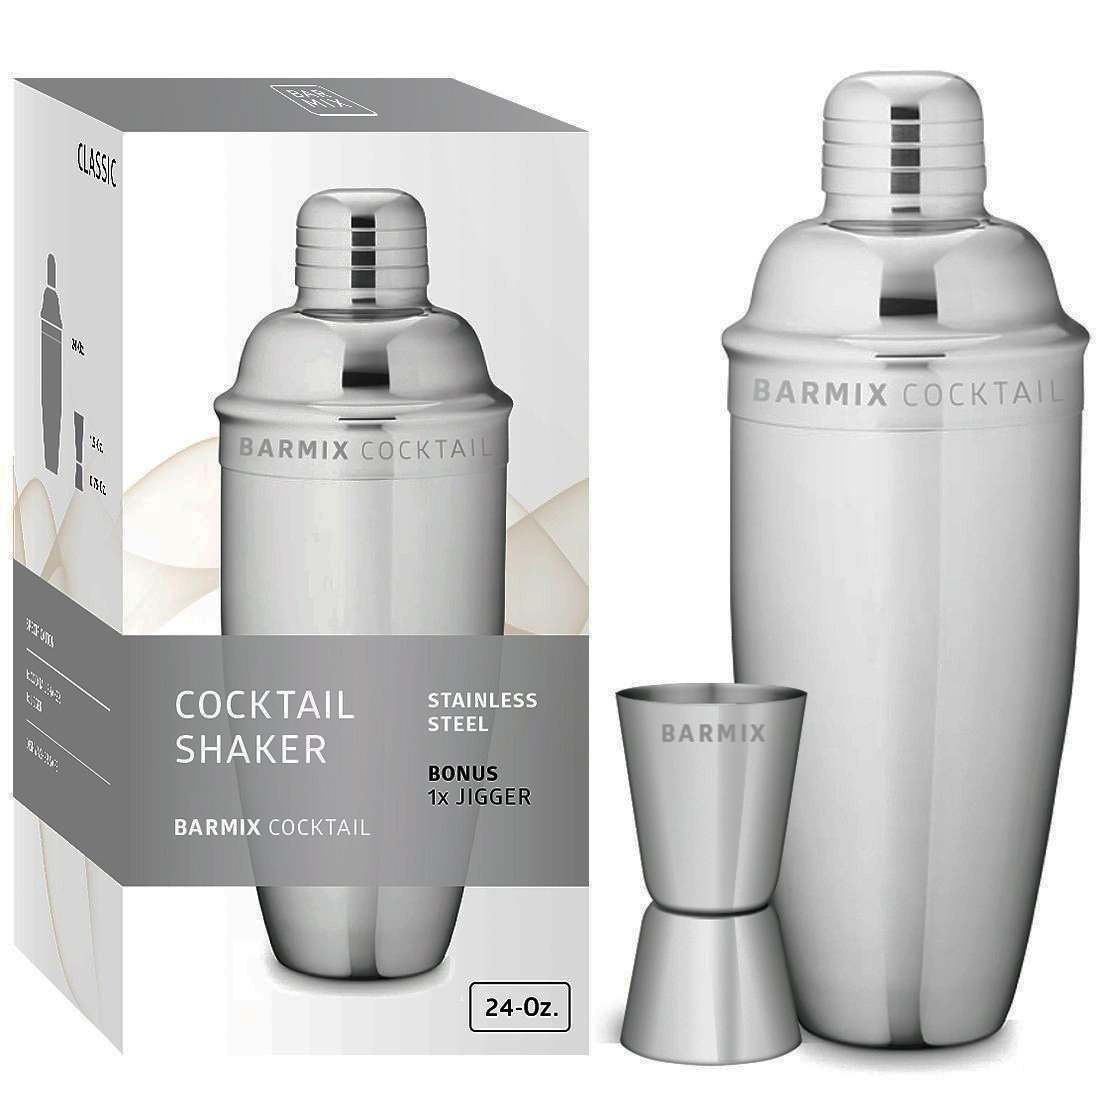 Barmix Martini Cocktail Shaker 24 Ounces, Stainless Steel, Jigger Included COMINHKPR110554